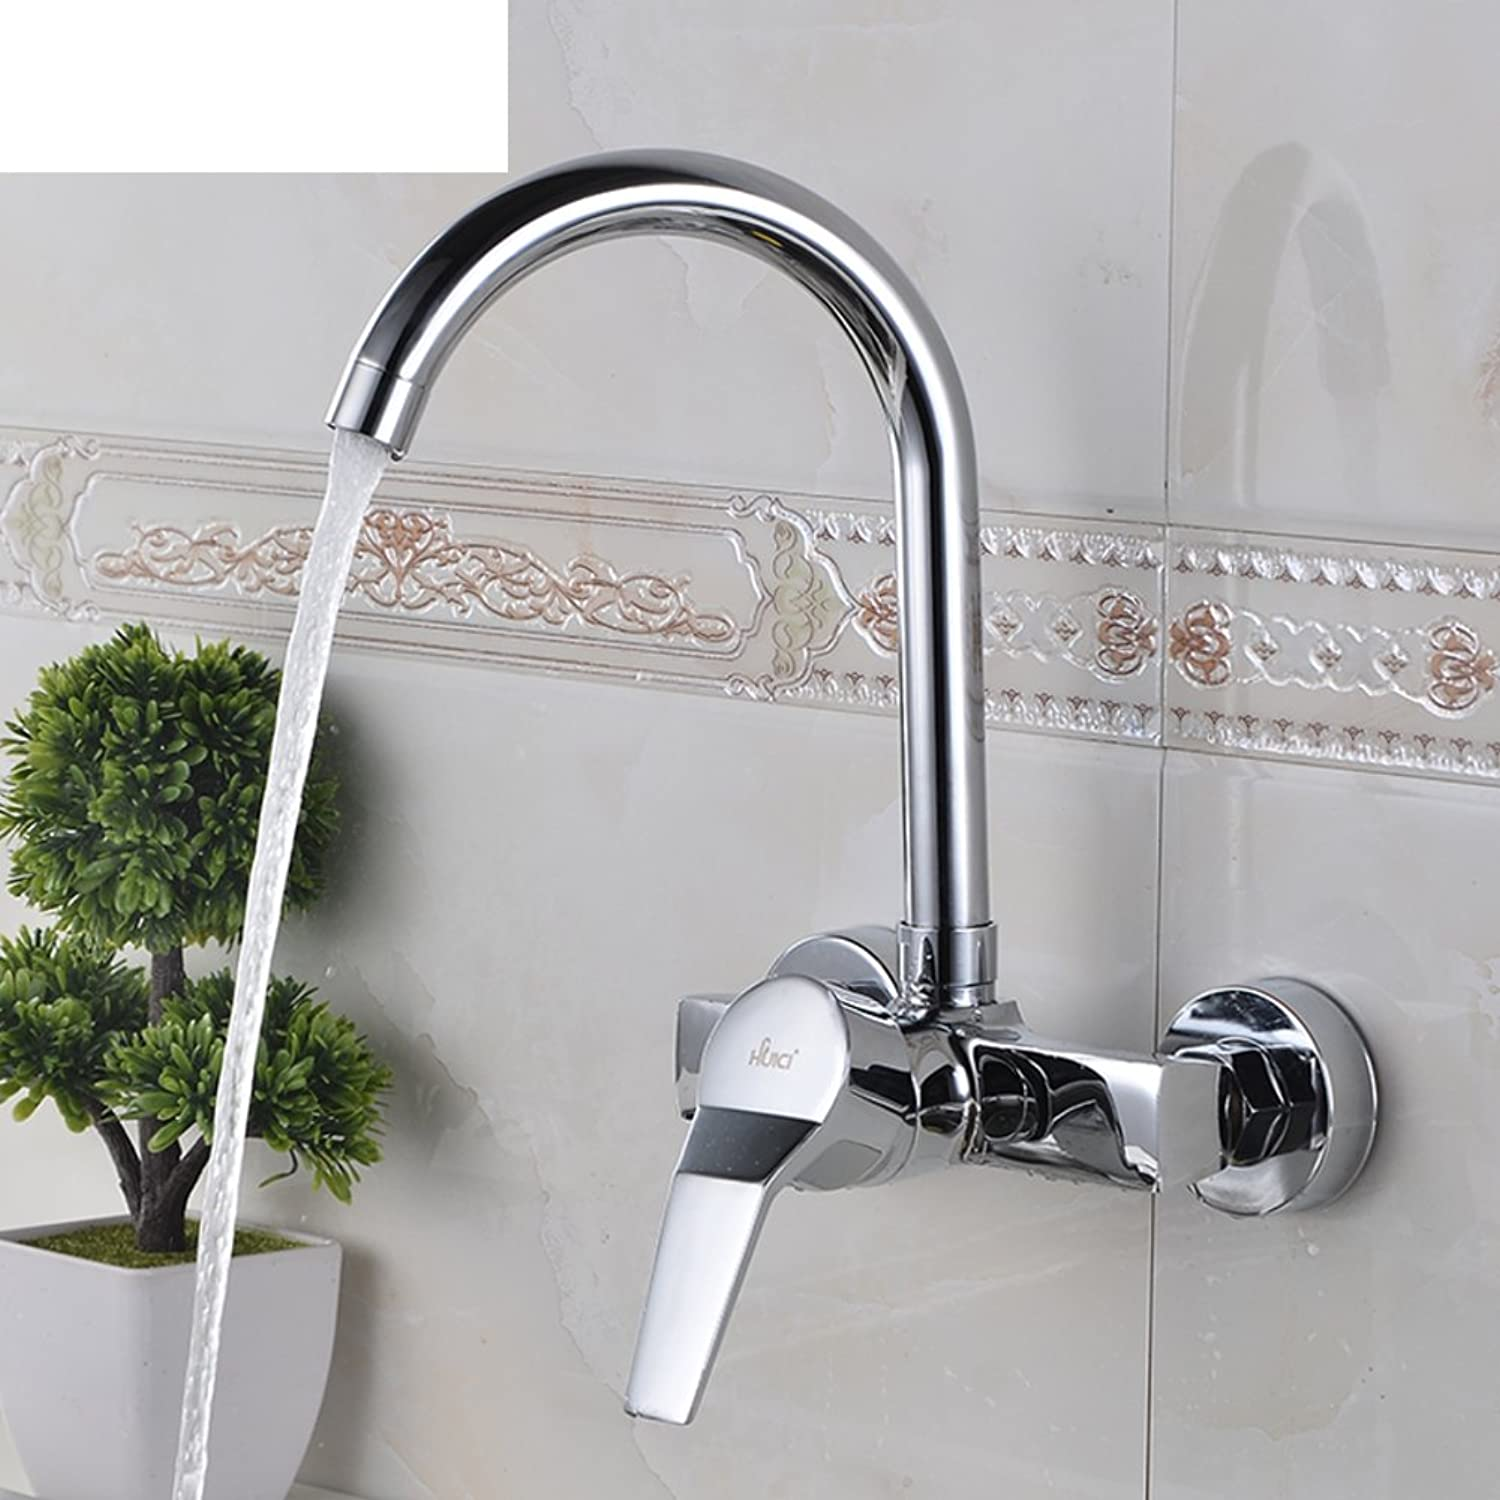 Wall Kitchen Faucet hot and Cold Balcony Kitchen Faucet redating hot and Cold taps-B